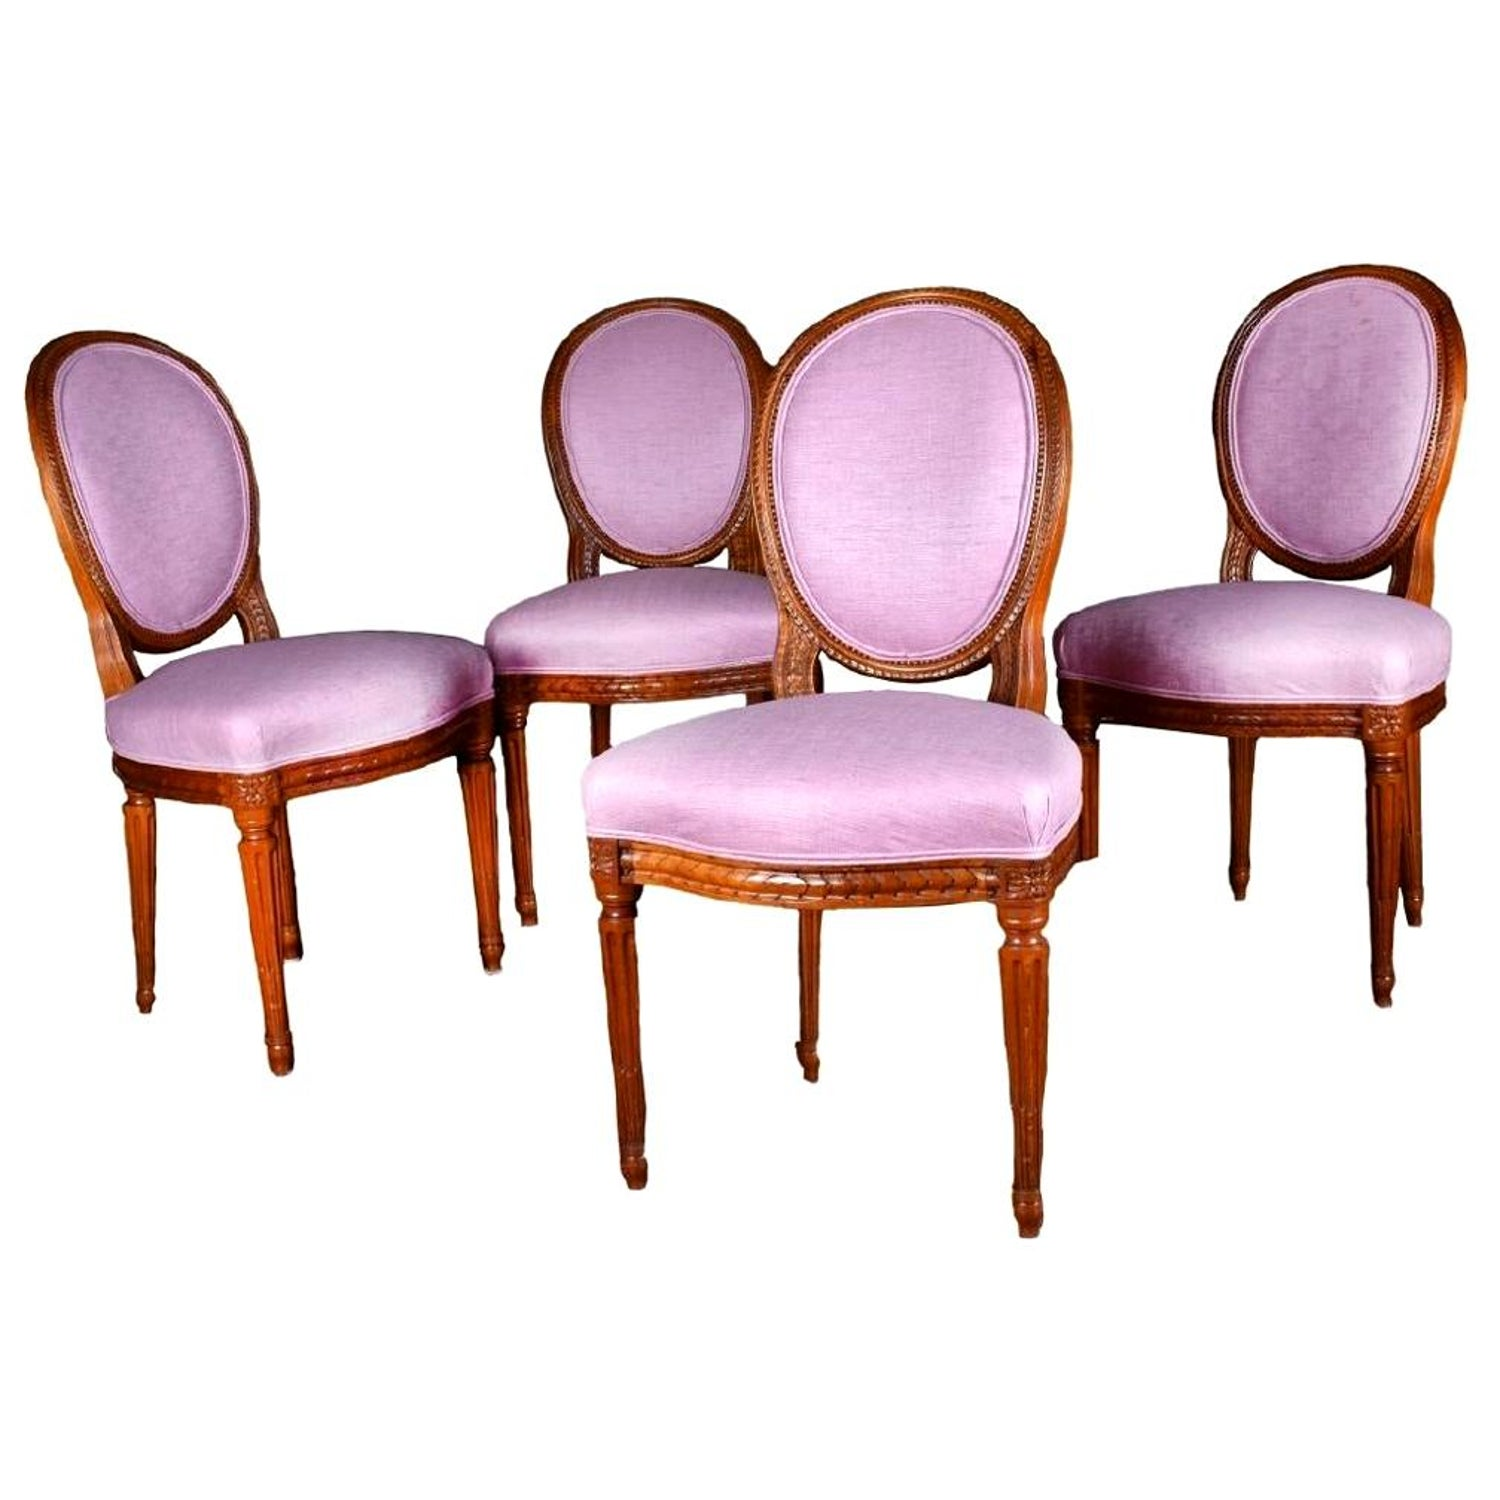 Set Of Four Neoclassical 18th Century Upholstered Dining Chairs In Pink France For Sale At 1stdibs